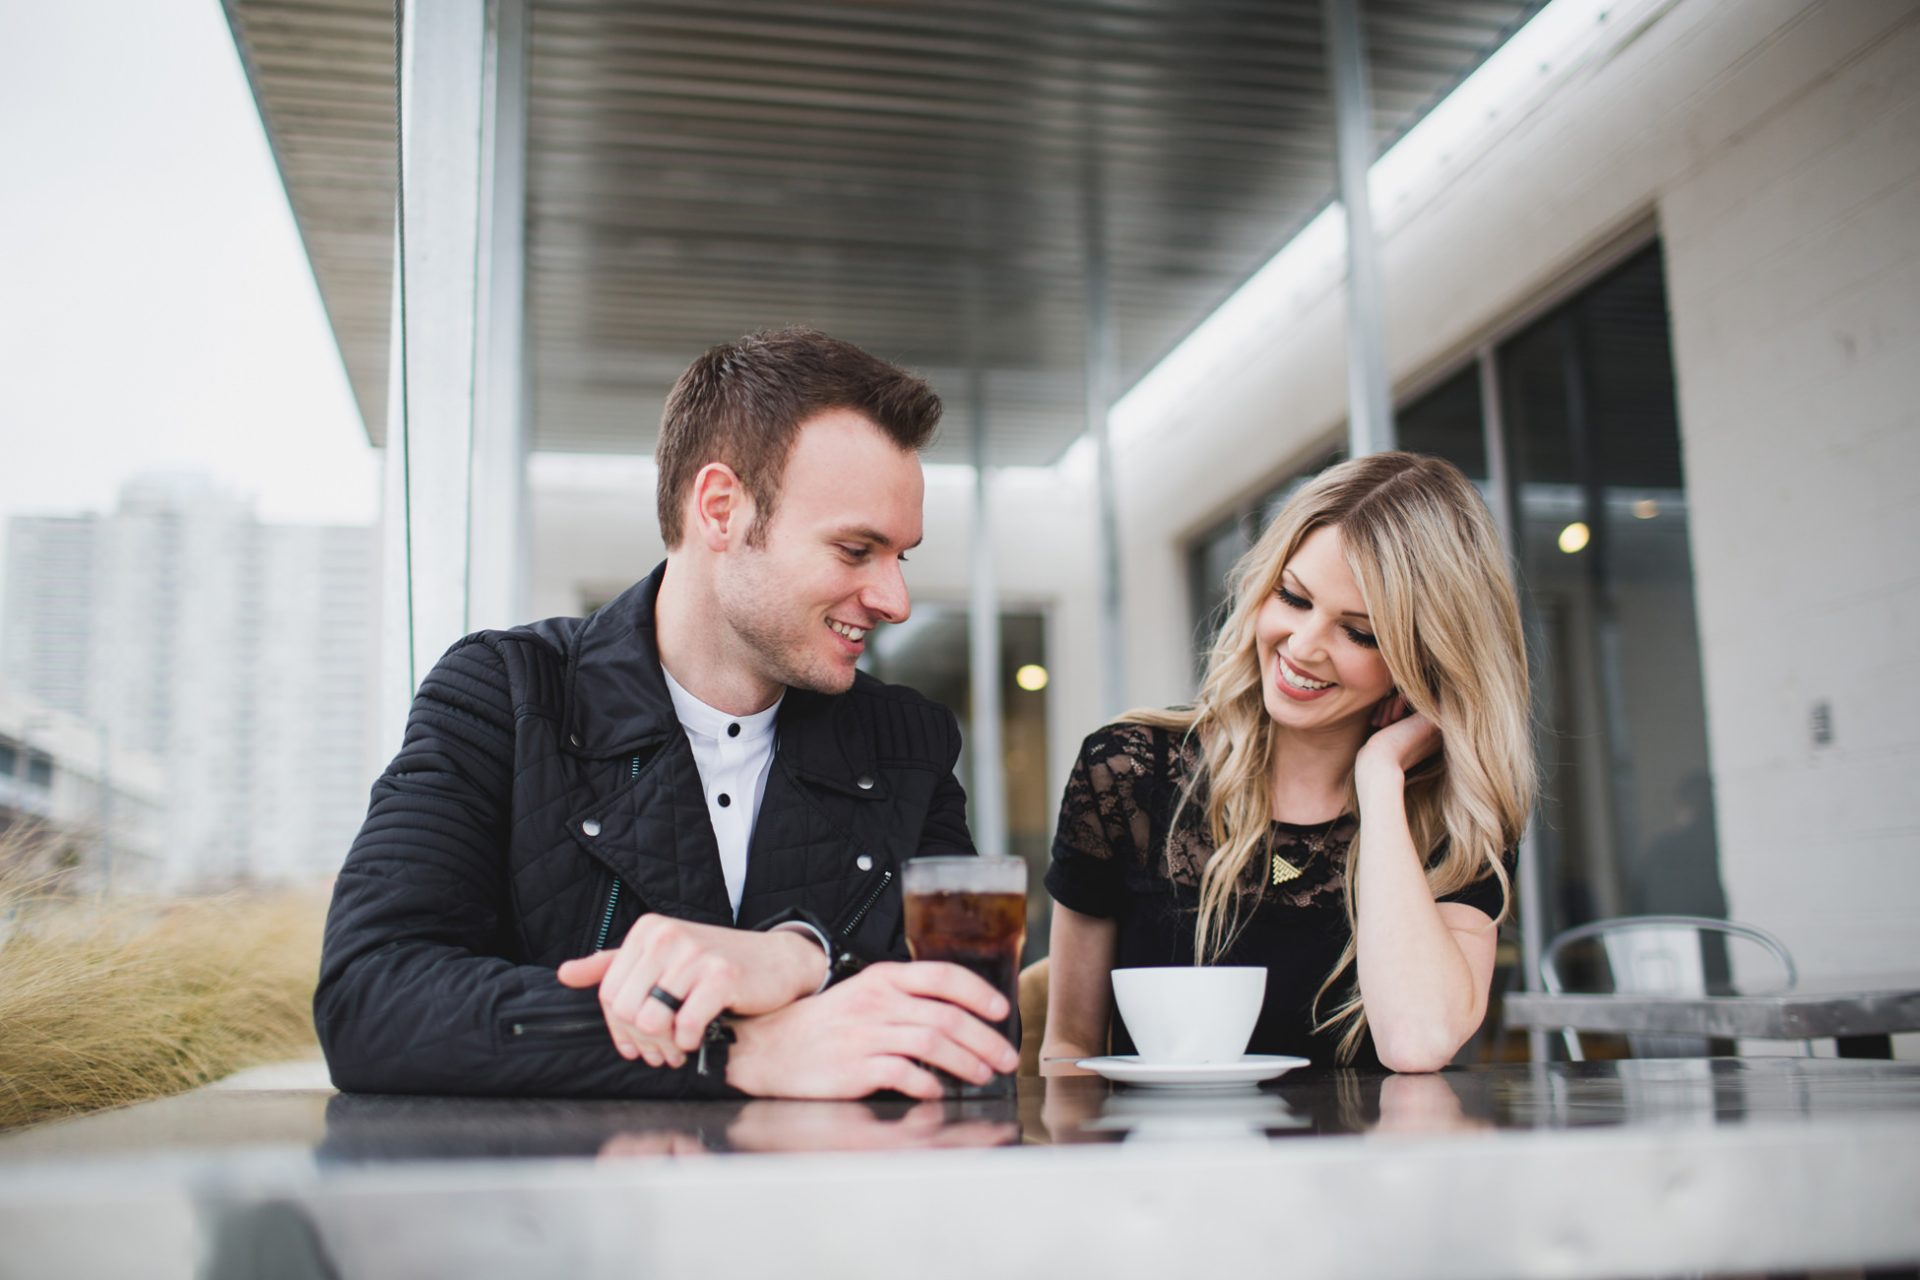 best-top-los-angeles-oklahoma-destination-engagement-photographer-hipster-modern-quirky-editorial-romantic-epic-13-coffee-date